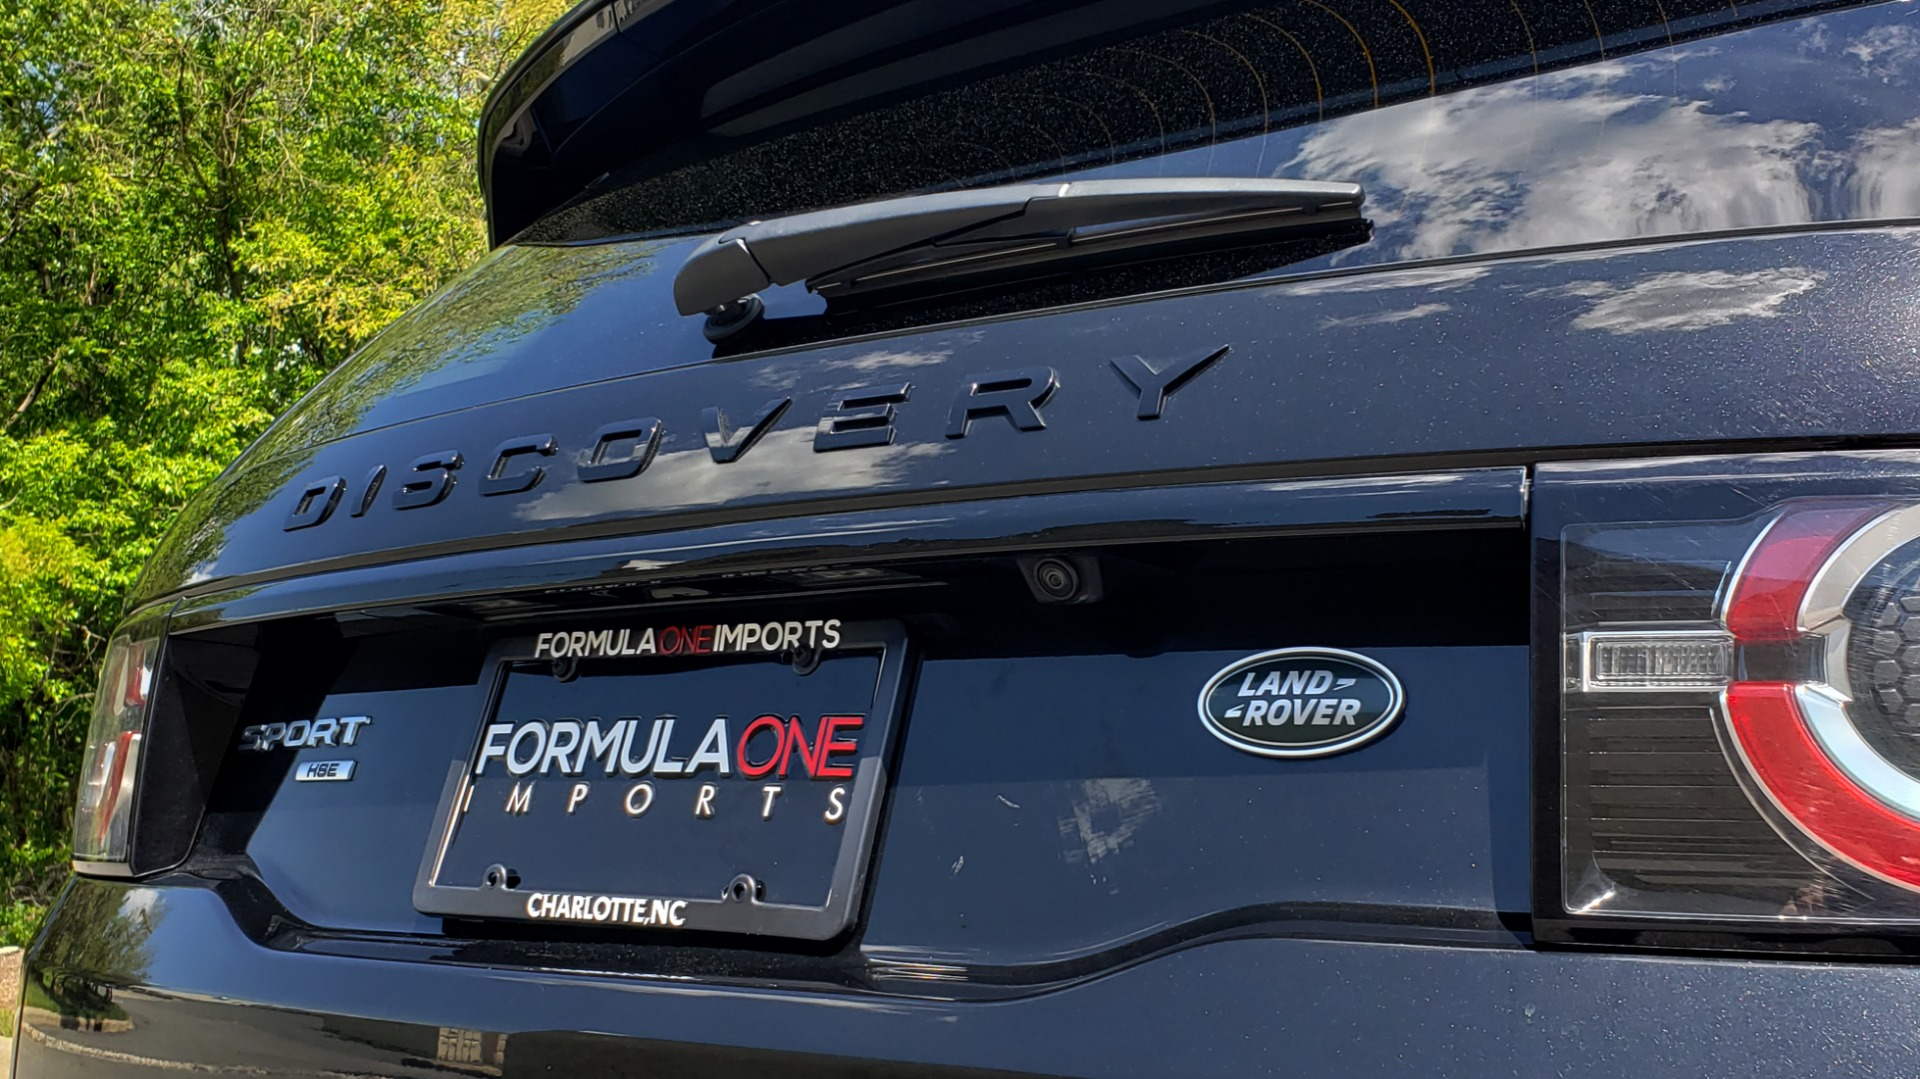 Used 2017 Land Rover DISCOVERY SPORT HSE / NAV / PANO-ROOF / REARVIEW / HTD STS / LANE DEPART for sale Sold at Formula Imports in Charlotte NC 28227 32